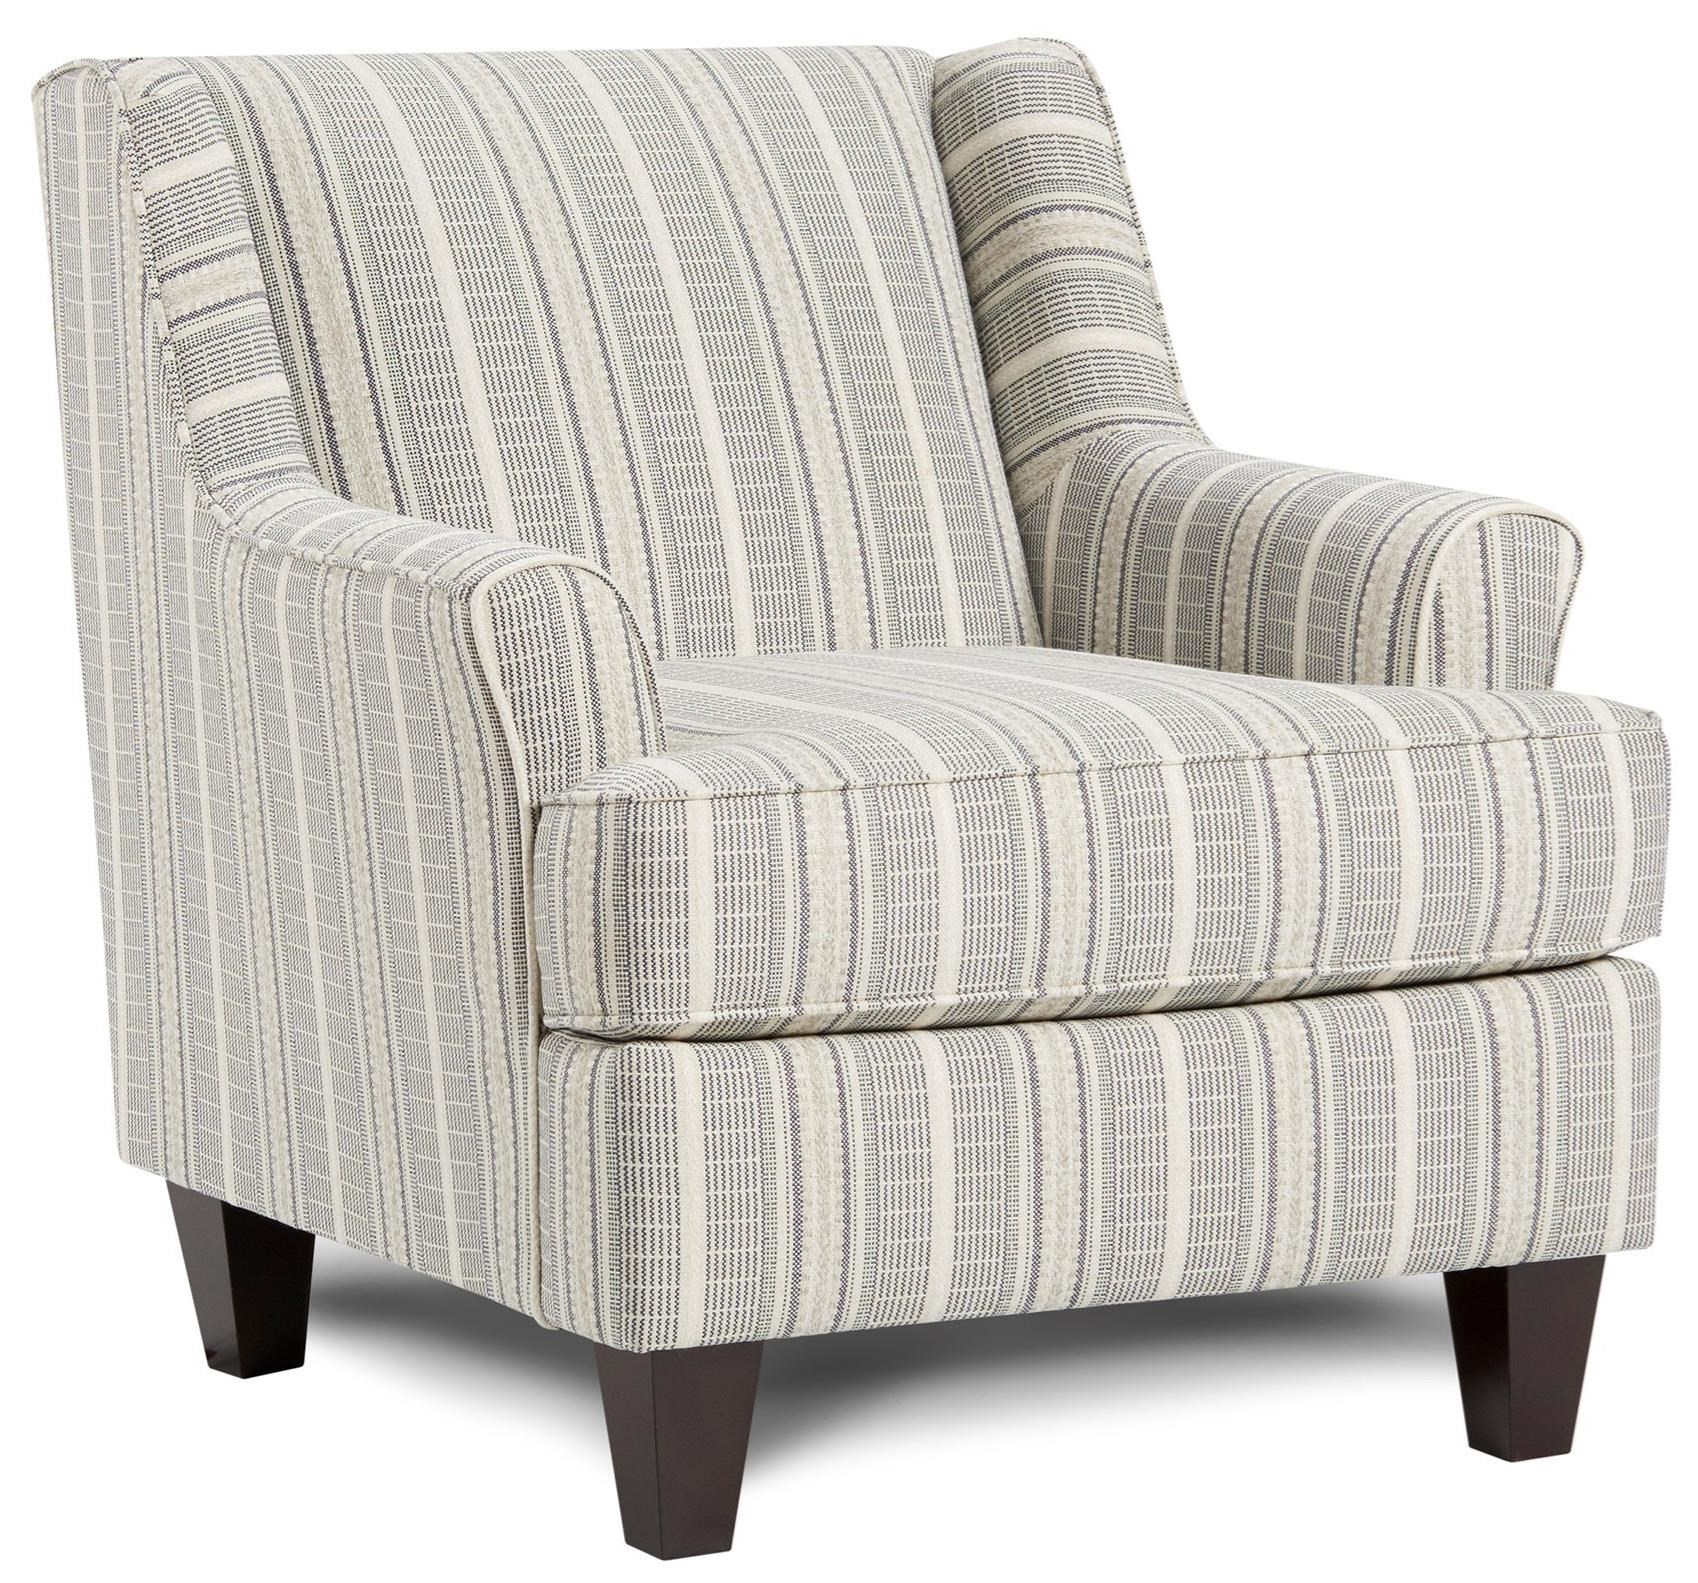 340 Upholstered Chair by Fusion Furniture at Story & Lee Furniture